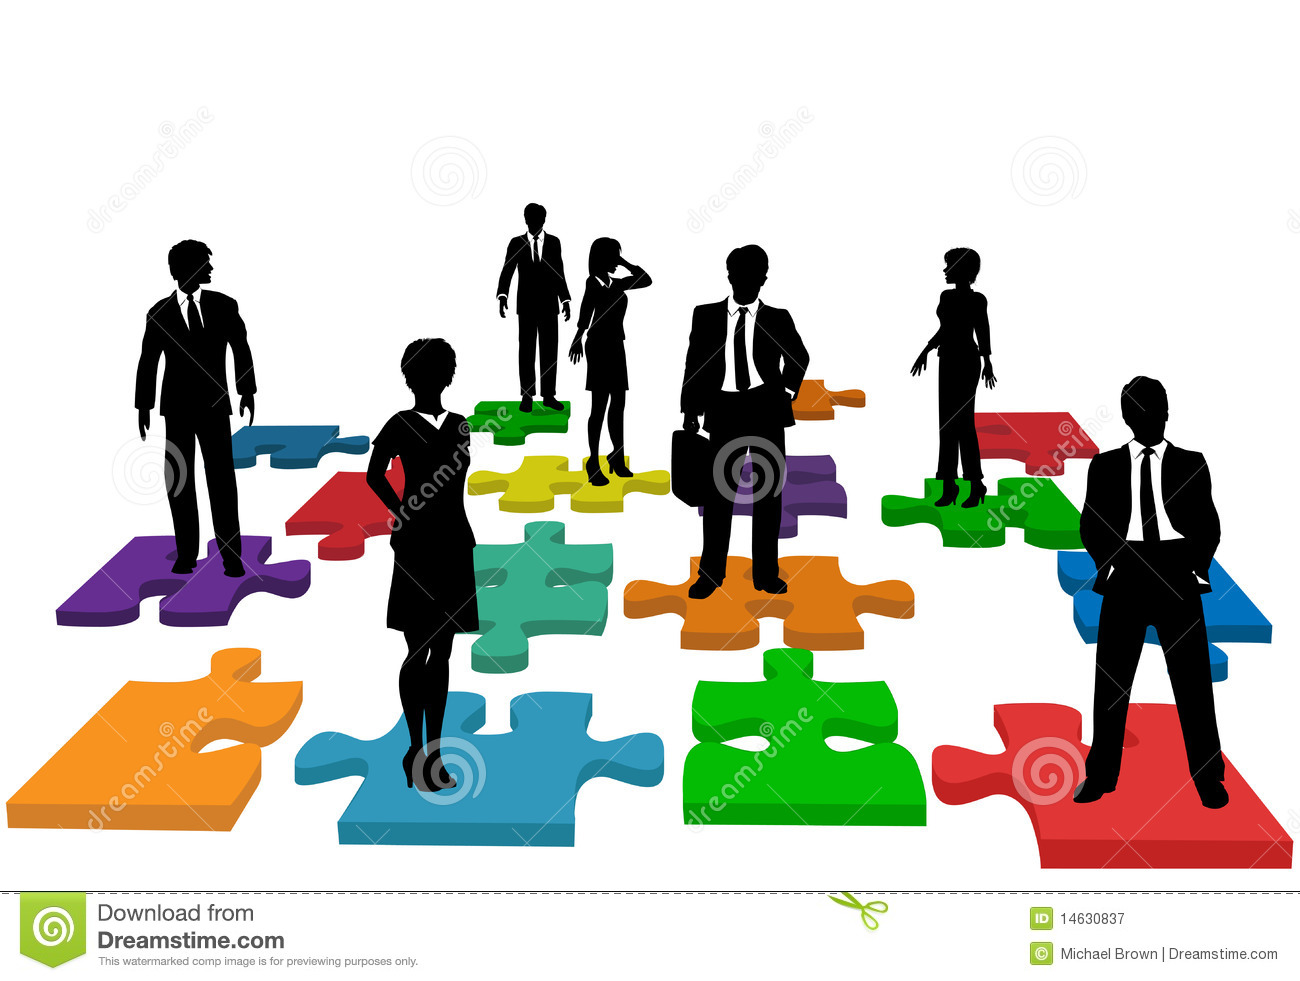 Business people human resources team puzzle